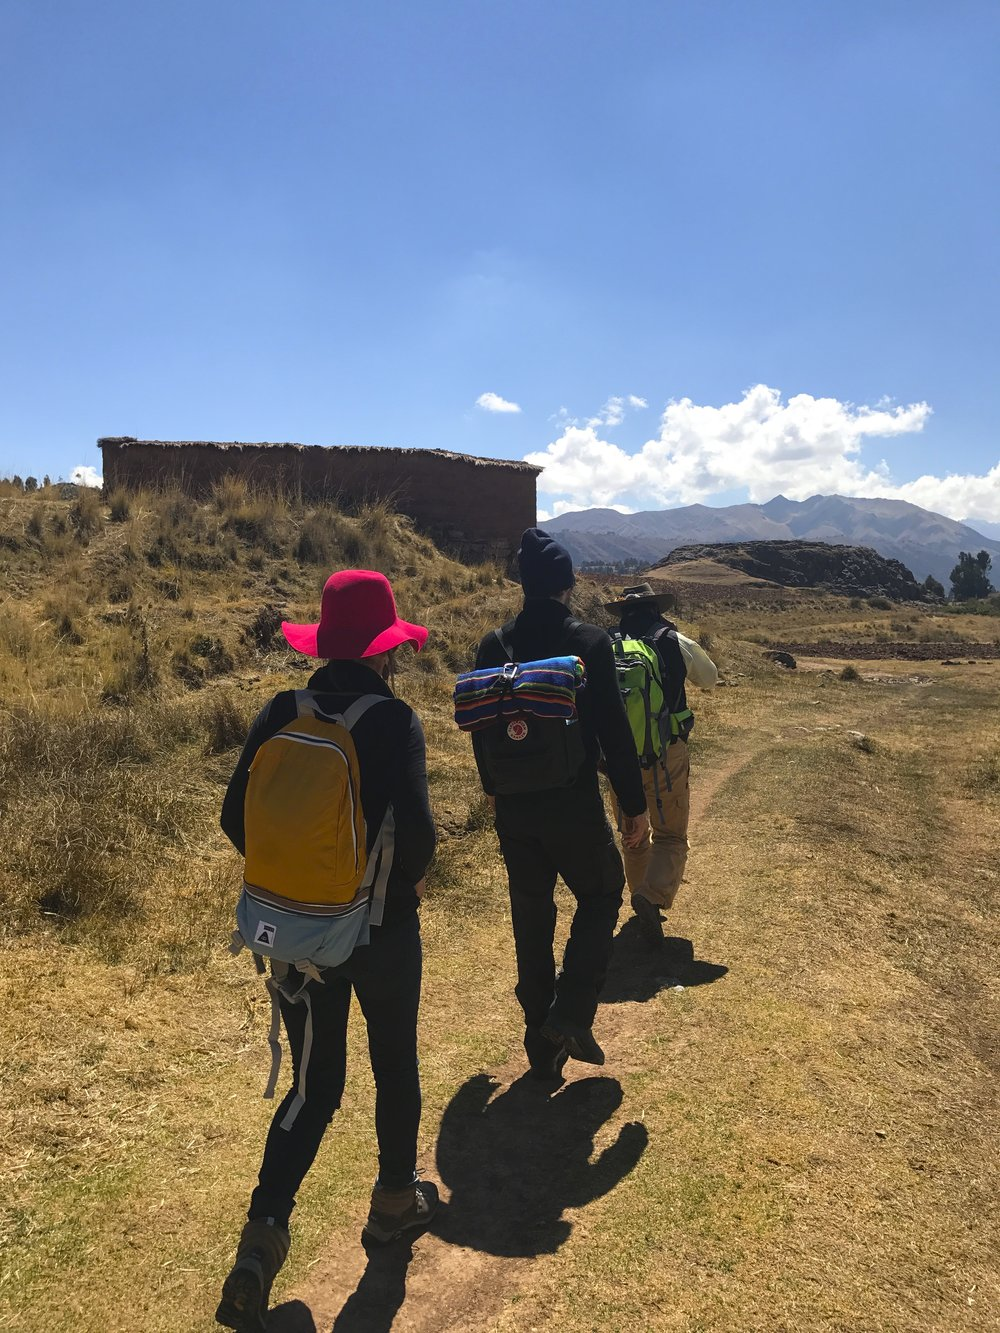 Treking to the Temple of the Moon, Cusco Peru.